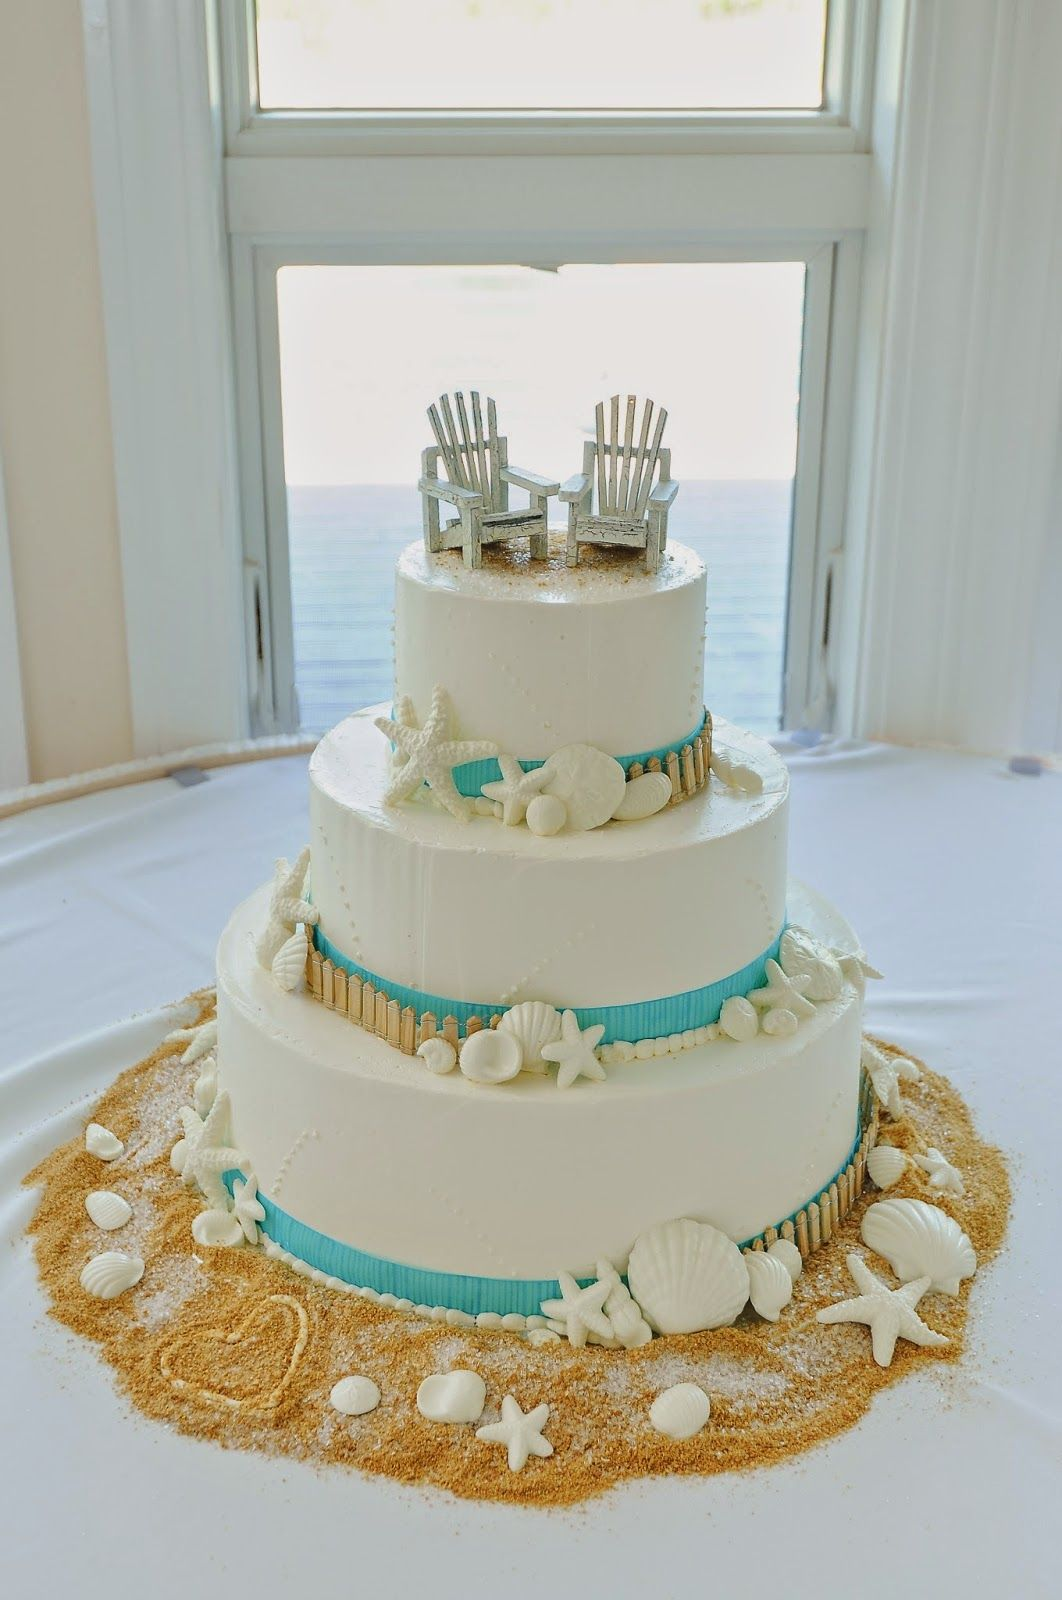 Diy Beach Weddings Beach Theme Wedding Cakes Beach Wedding